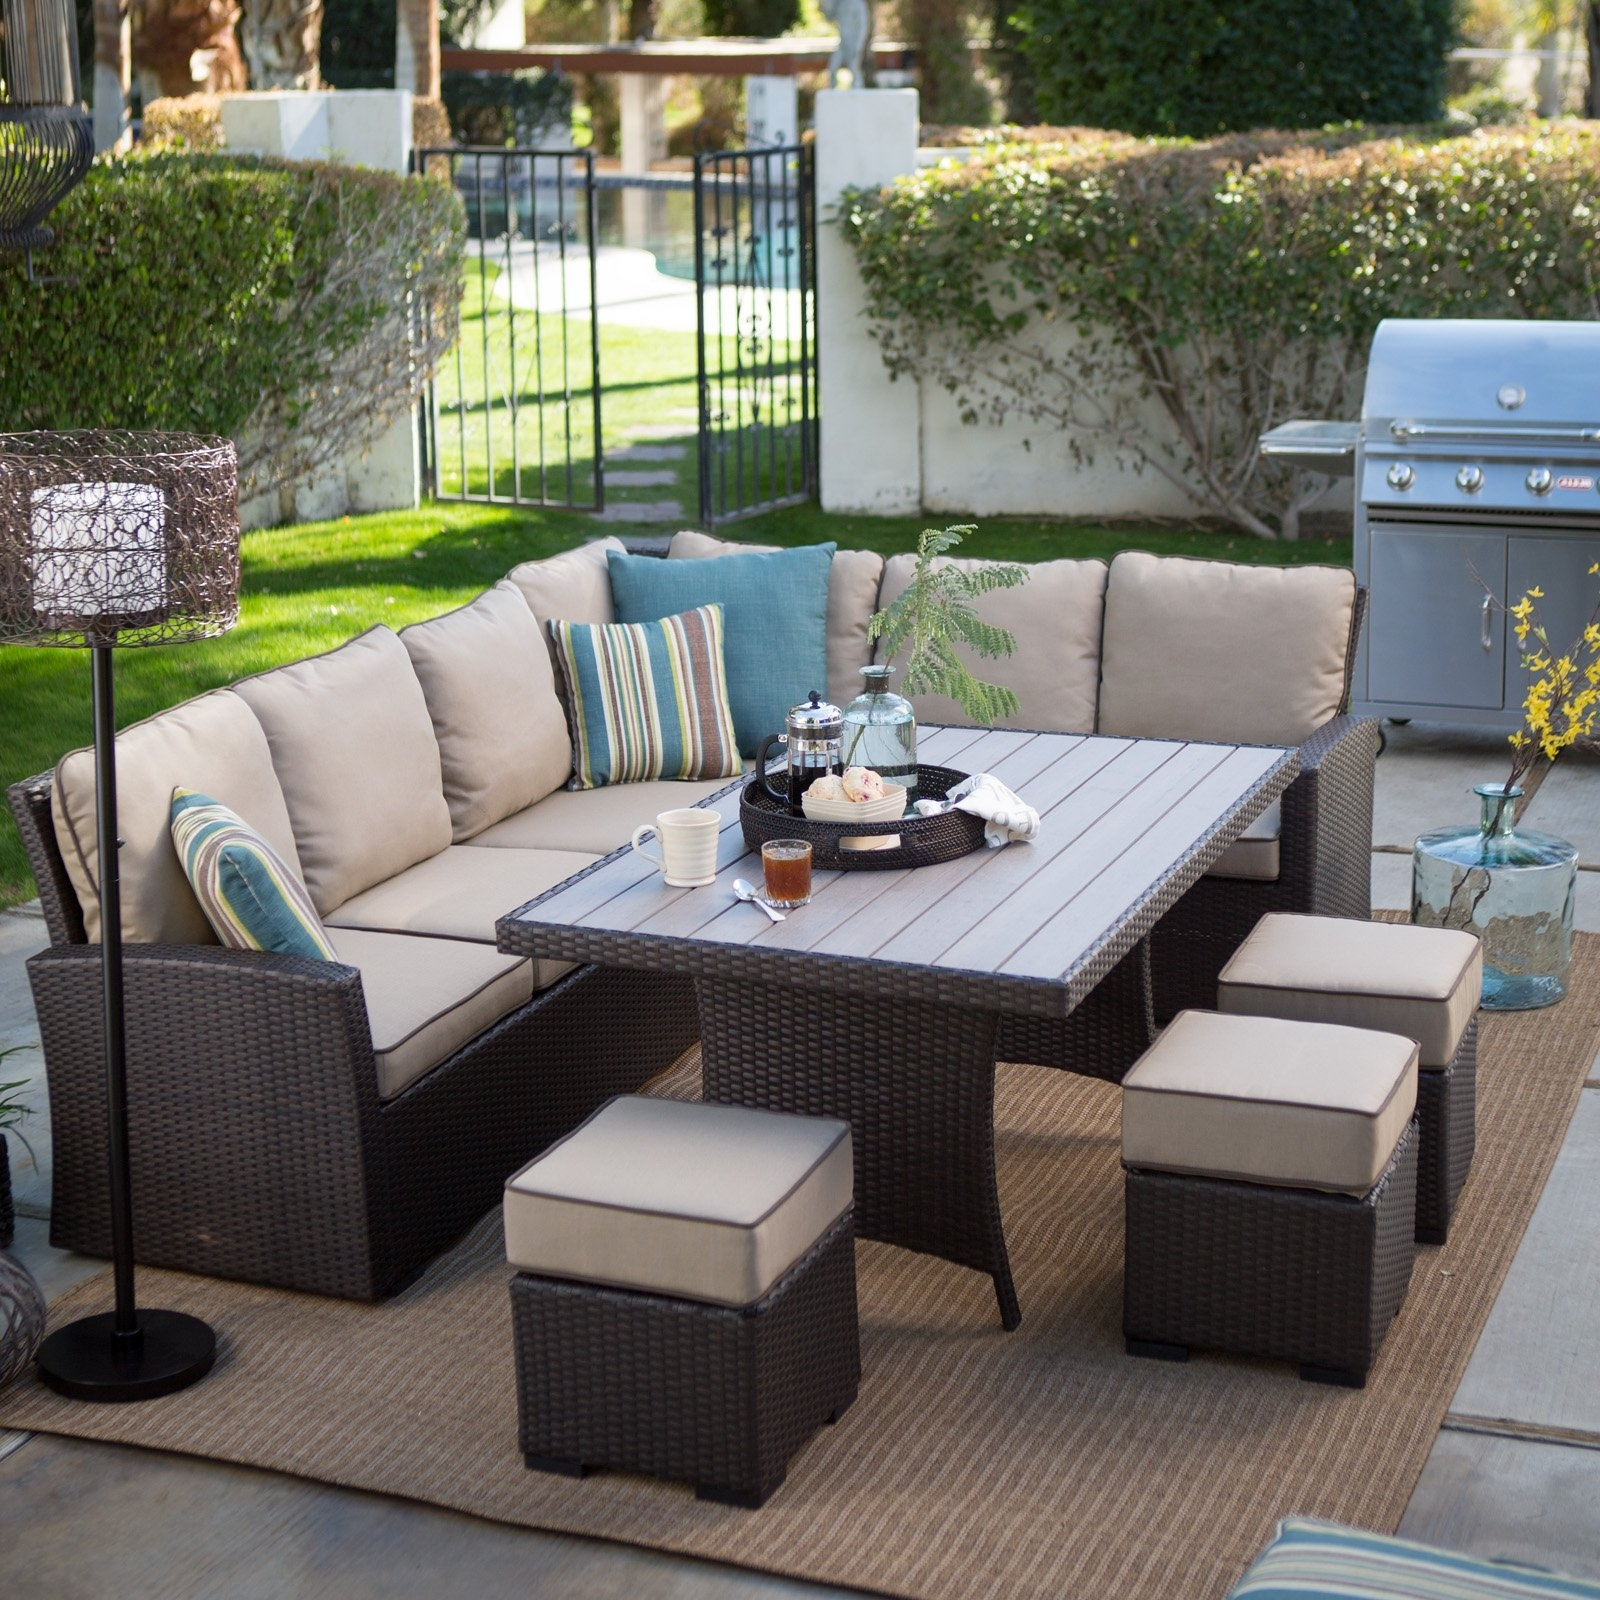 Belham Living Monticello All Weather Wicker Sofa Sectional Patio Inside 2018 Resin Conversation Patio Sets (View 14 of 20)